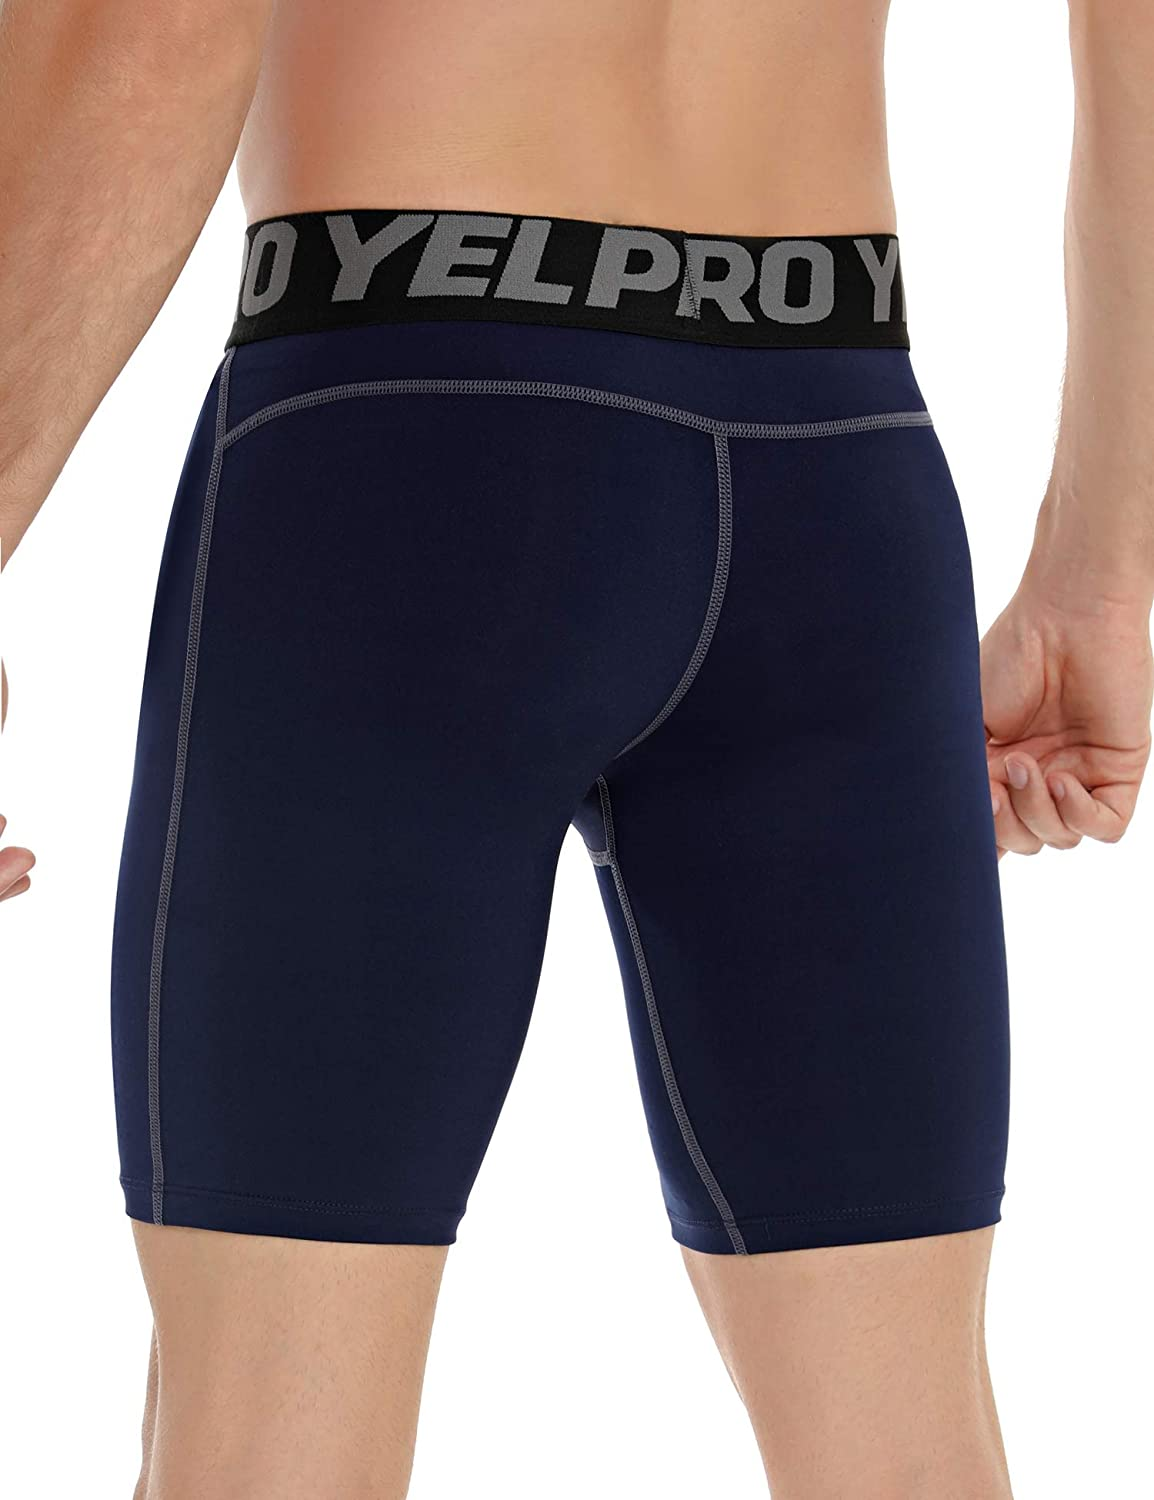 Sykooria Mens Performance Compression Shorts,Quick Dry Shorts Tight Breathable Pants for Sports